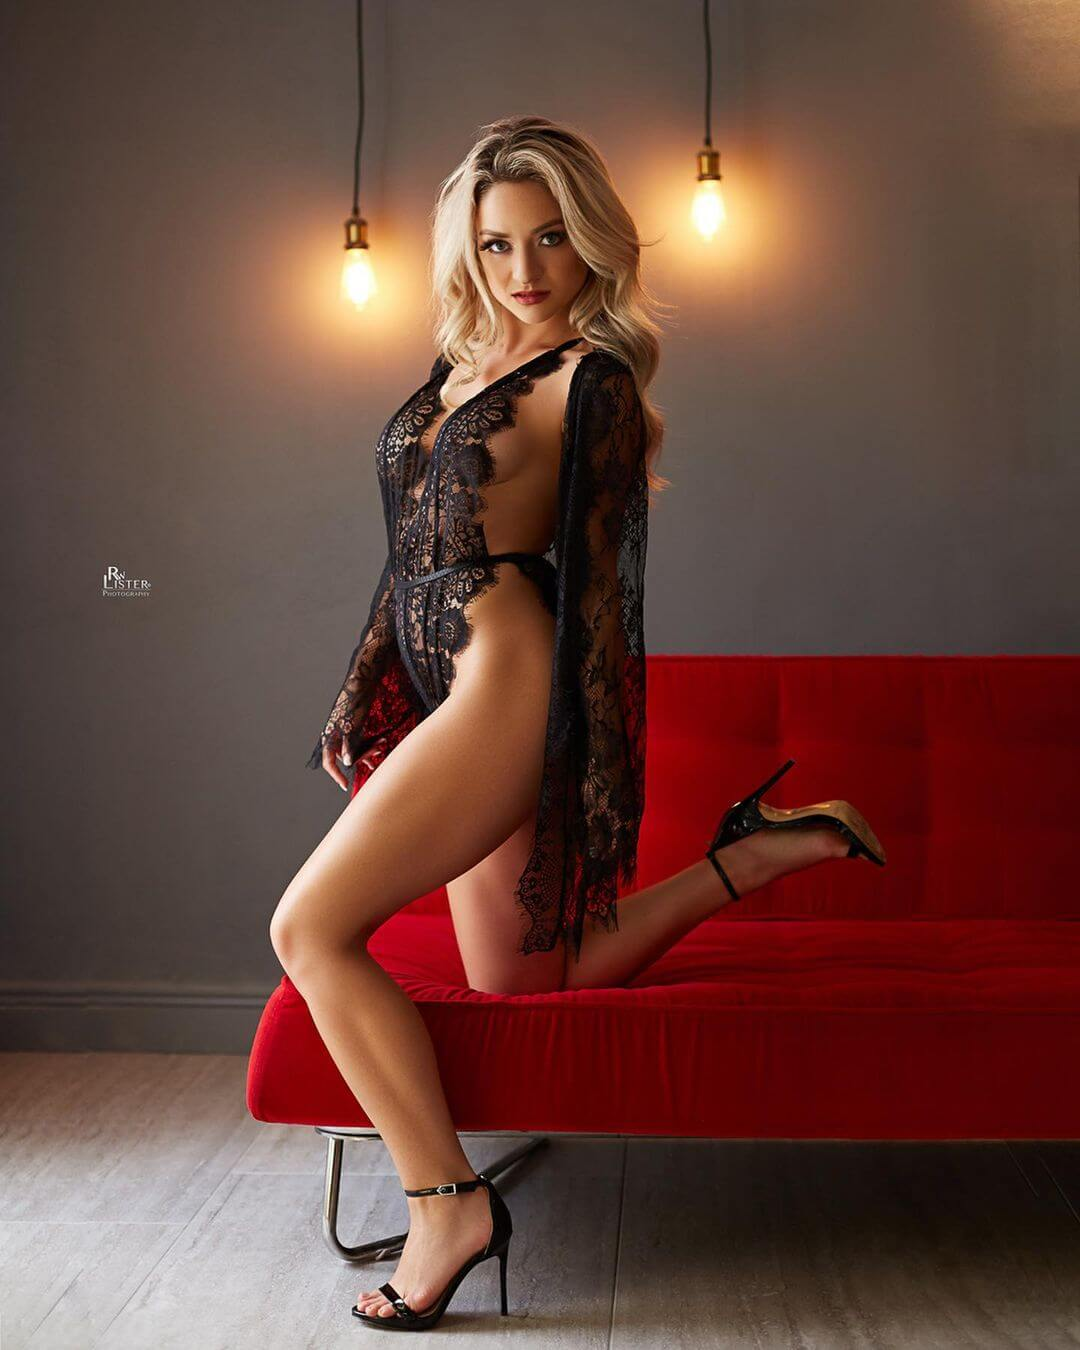 Beautiful blonde Penthouse Pet model Kenzie Mac @petkenzm standing showing her sexy legs and some side boobs wearing black lace lingerie and high heels in a sexy photo session by RW Llister photography @rwlisterphotography2